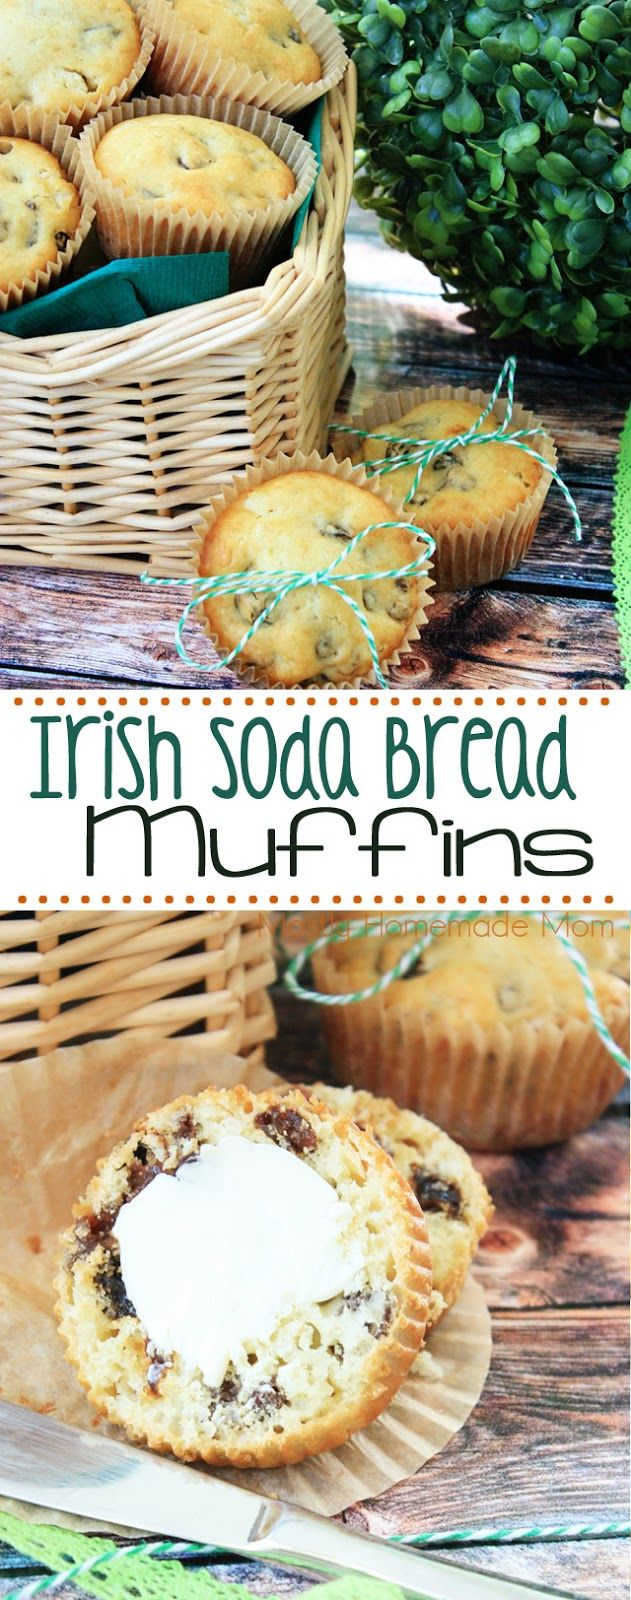 Delicious Irish Soda Bread Muffins - perfect for busy mornings year round or to celebrate St. Patrick's Day!